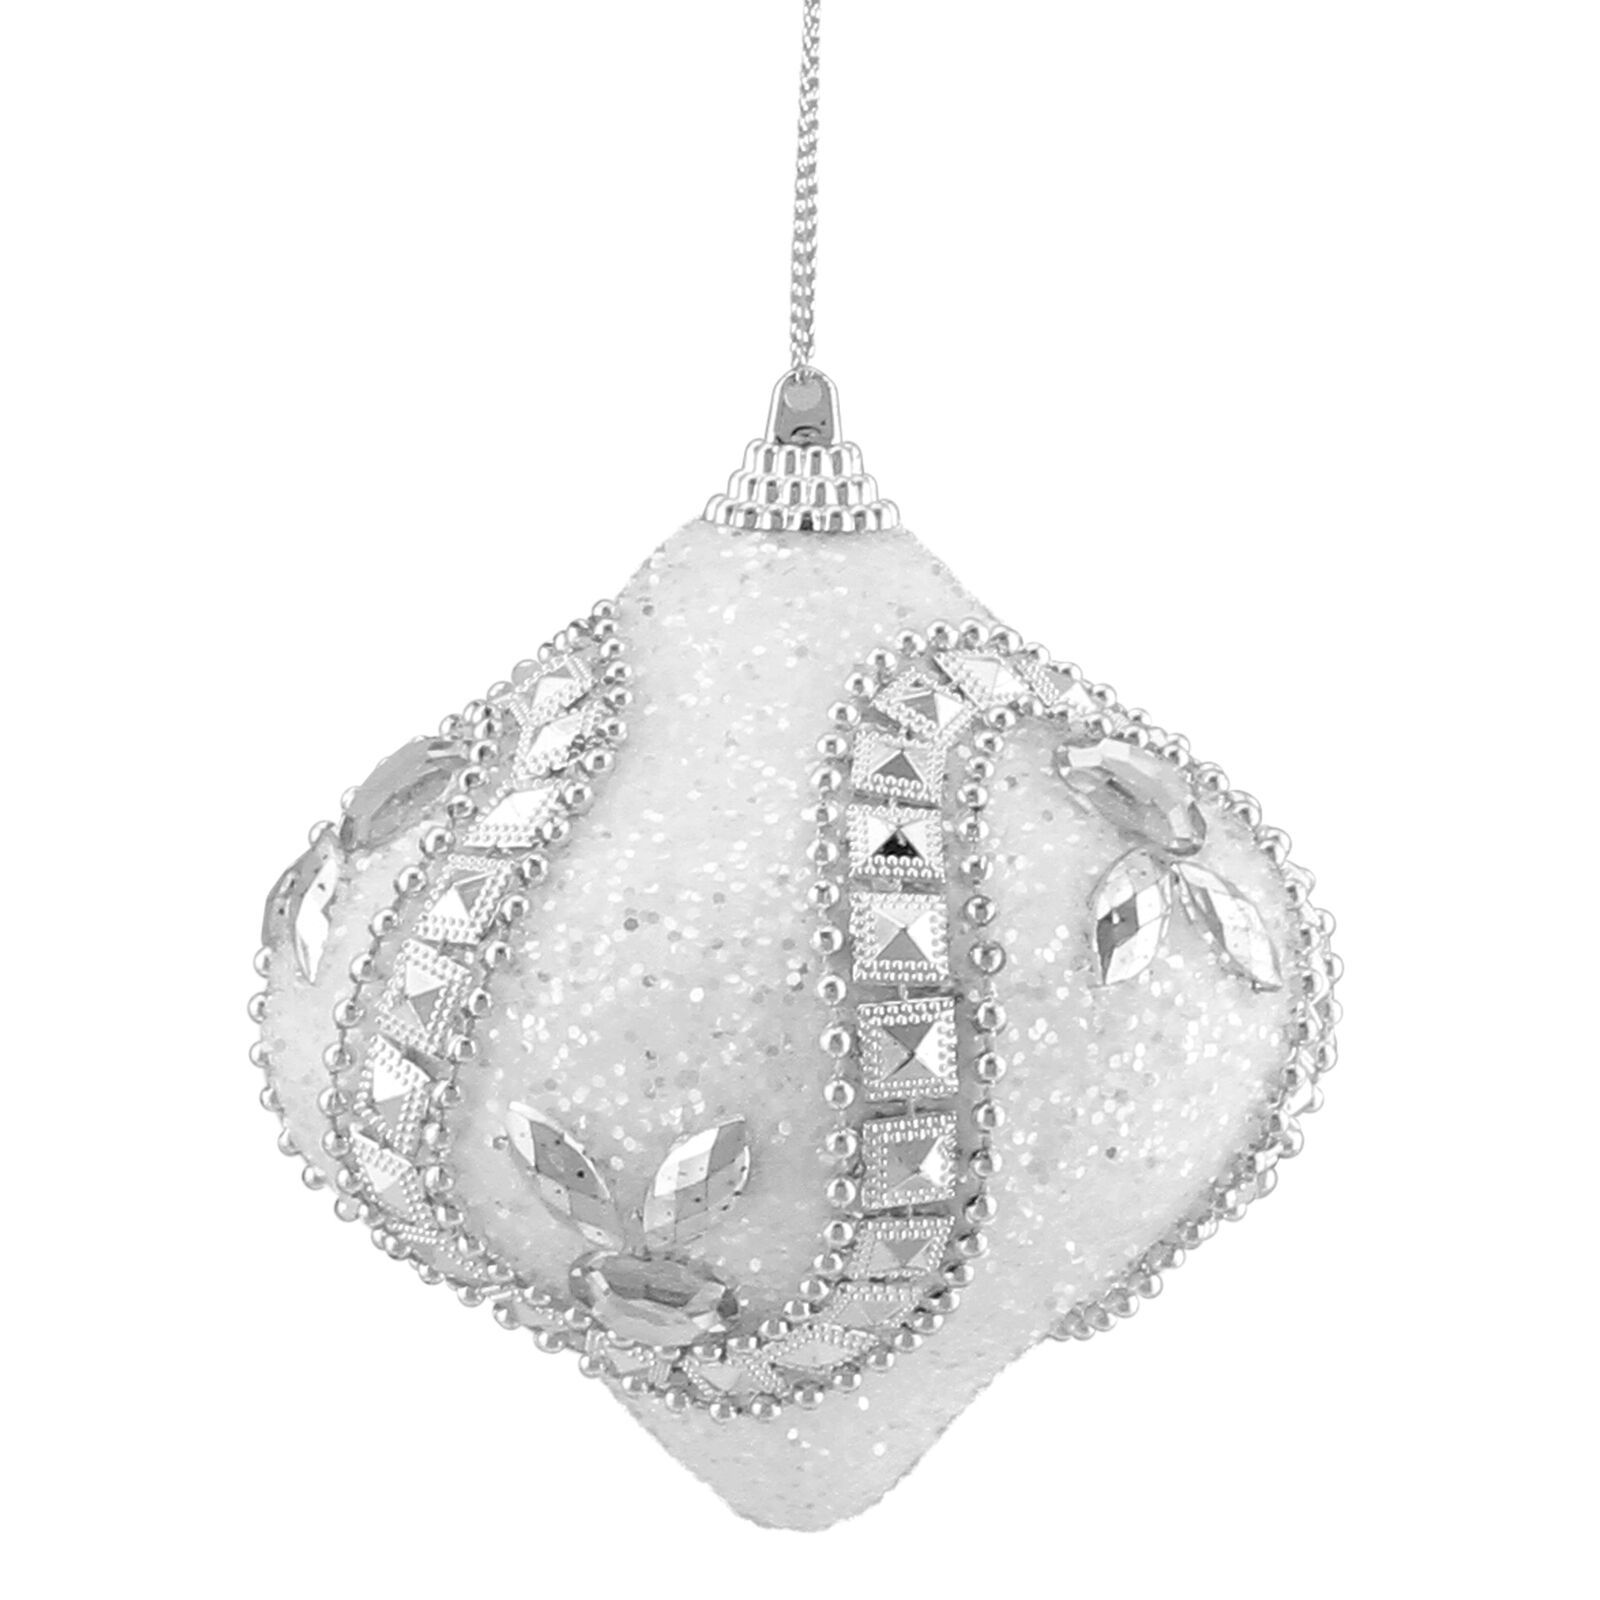 "Primary image for 3ct White and Silver Rhinestone Glitter Onion Christmas Ornaments 3""  - tkcc"